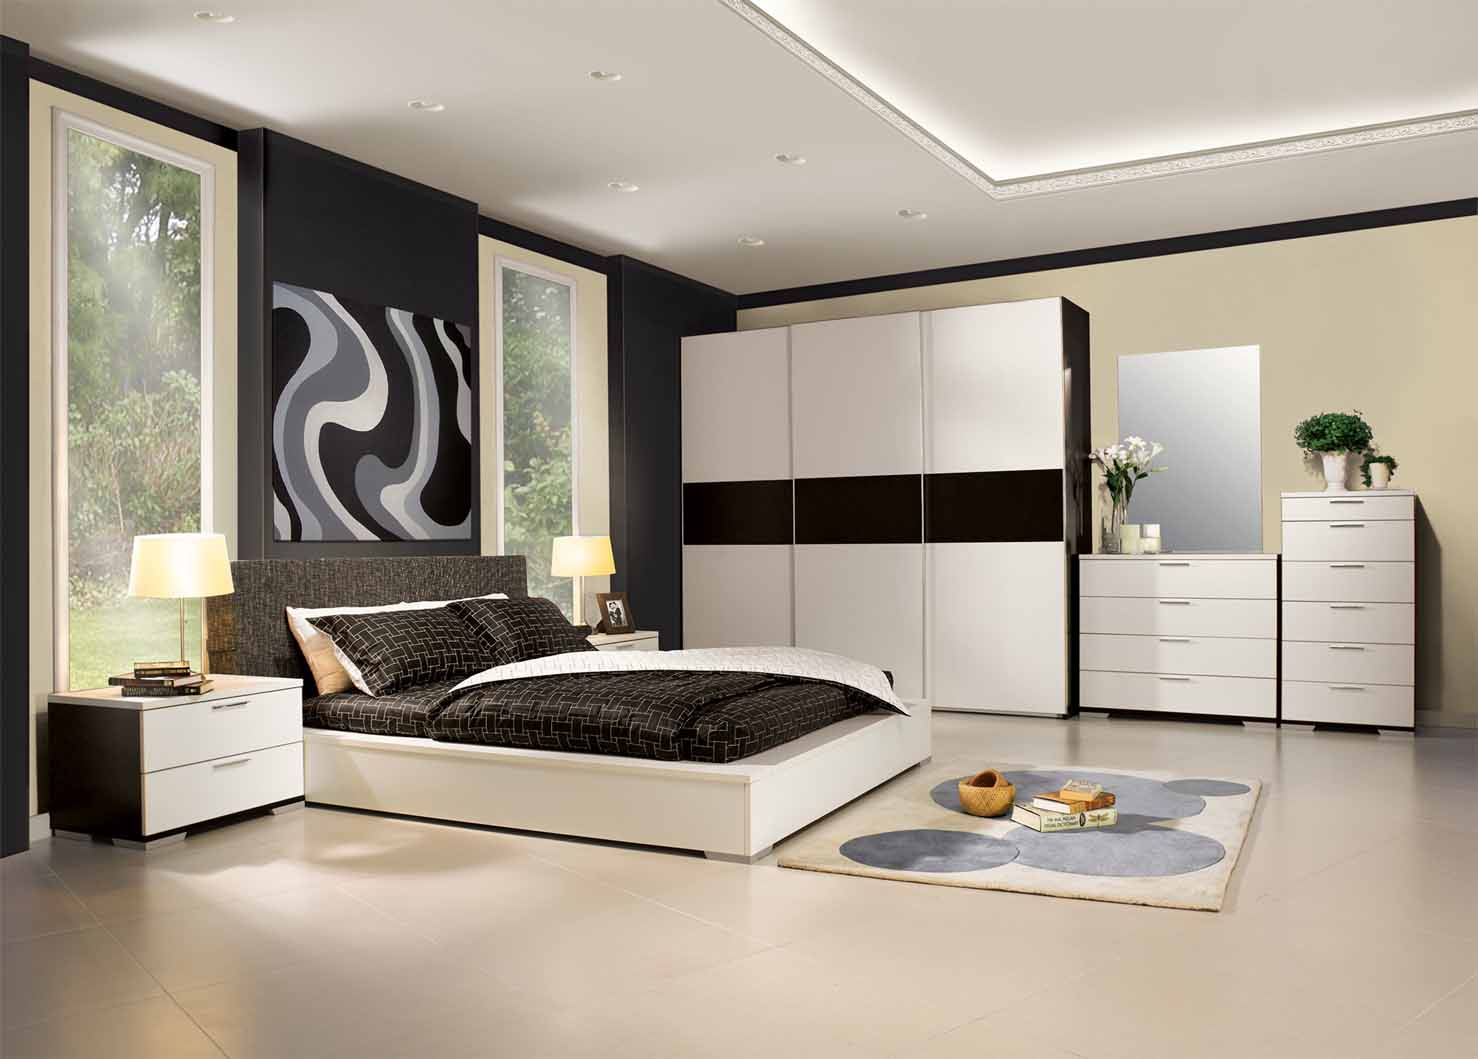 Modern black bedroom furniture popular interior house ideas for Bedroom interior furniture